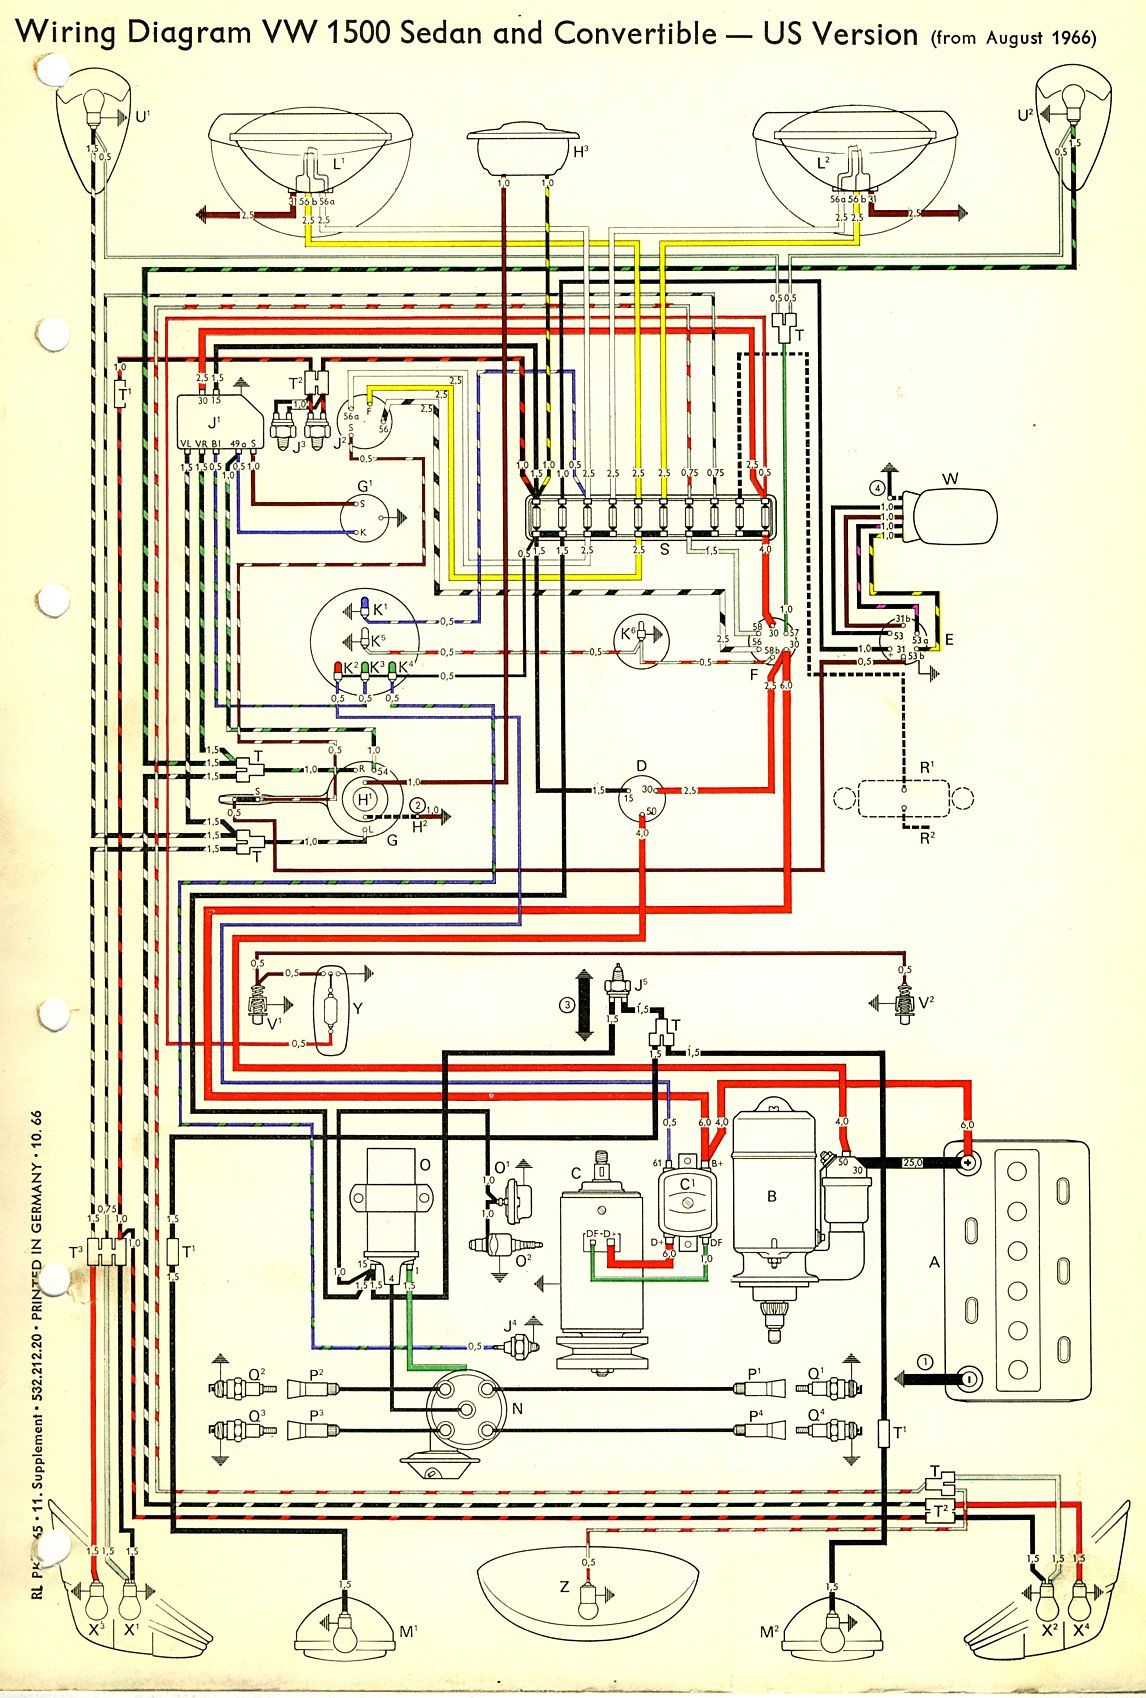 1adf990c0efb617c789fdd21338448b0 1967 beetle wiring diagram (usa) thegoldenbug com best 1967 vw vw beetle wiring diagram at bakdesigns.co